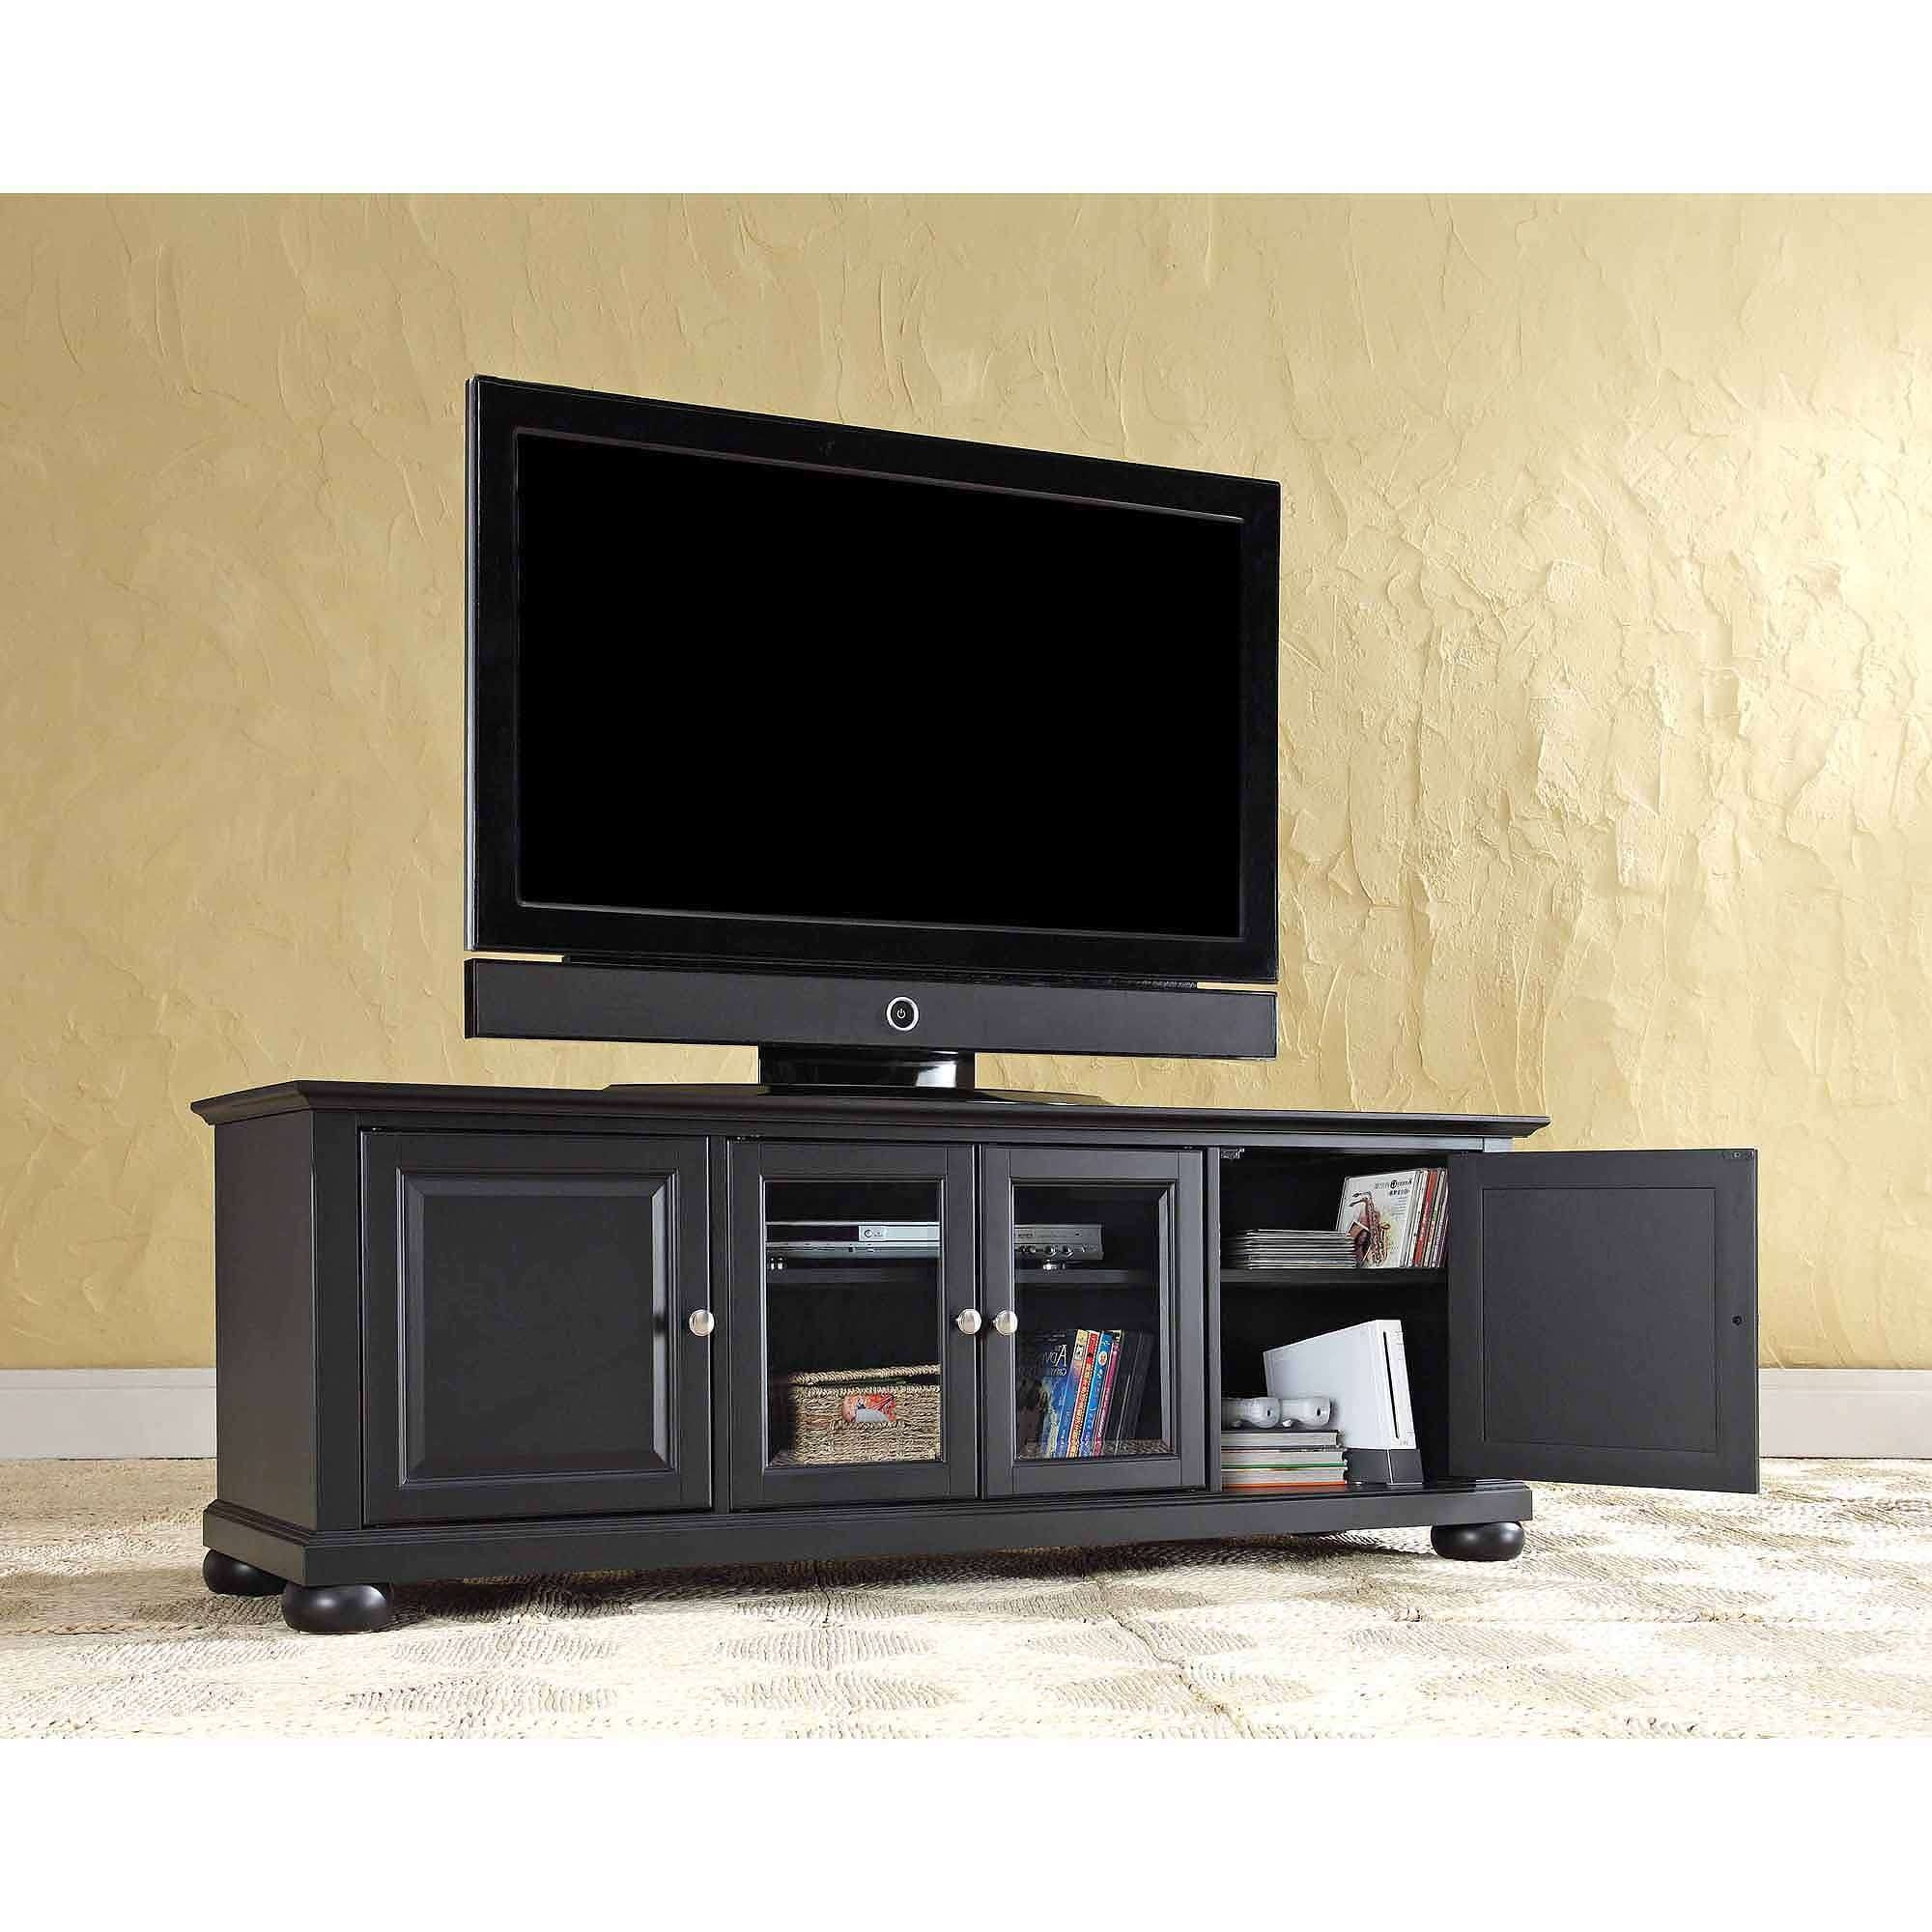 Tv Stand : Tv Stands Corner Tvnd For Inch Flat Screen Remarkable Intended For Corner 60 Inch Tv Stands (View 11 of 15)